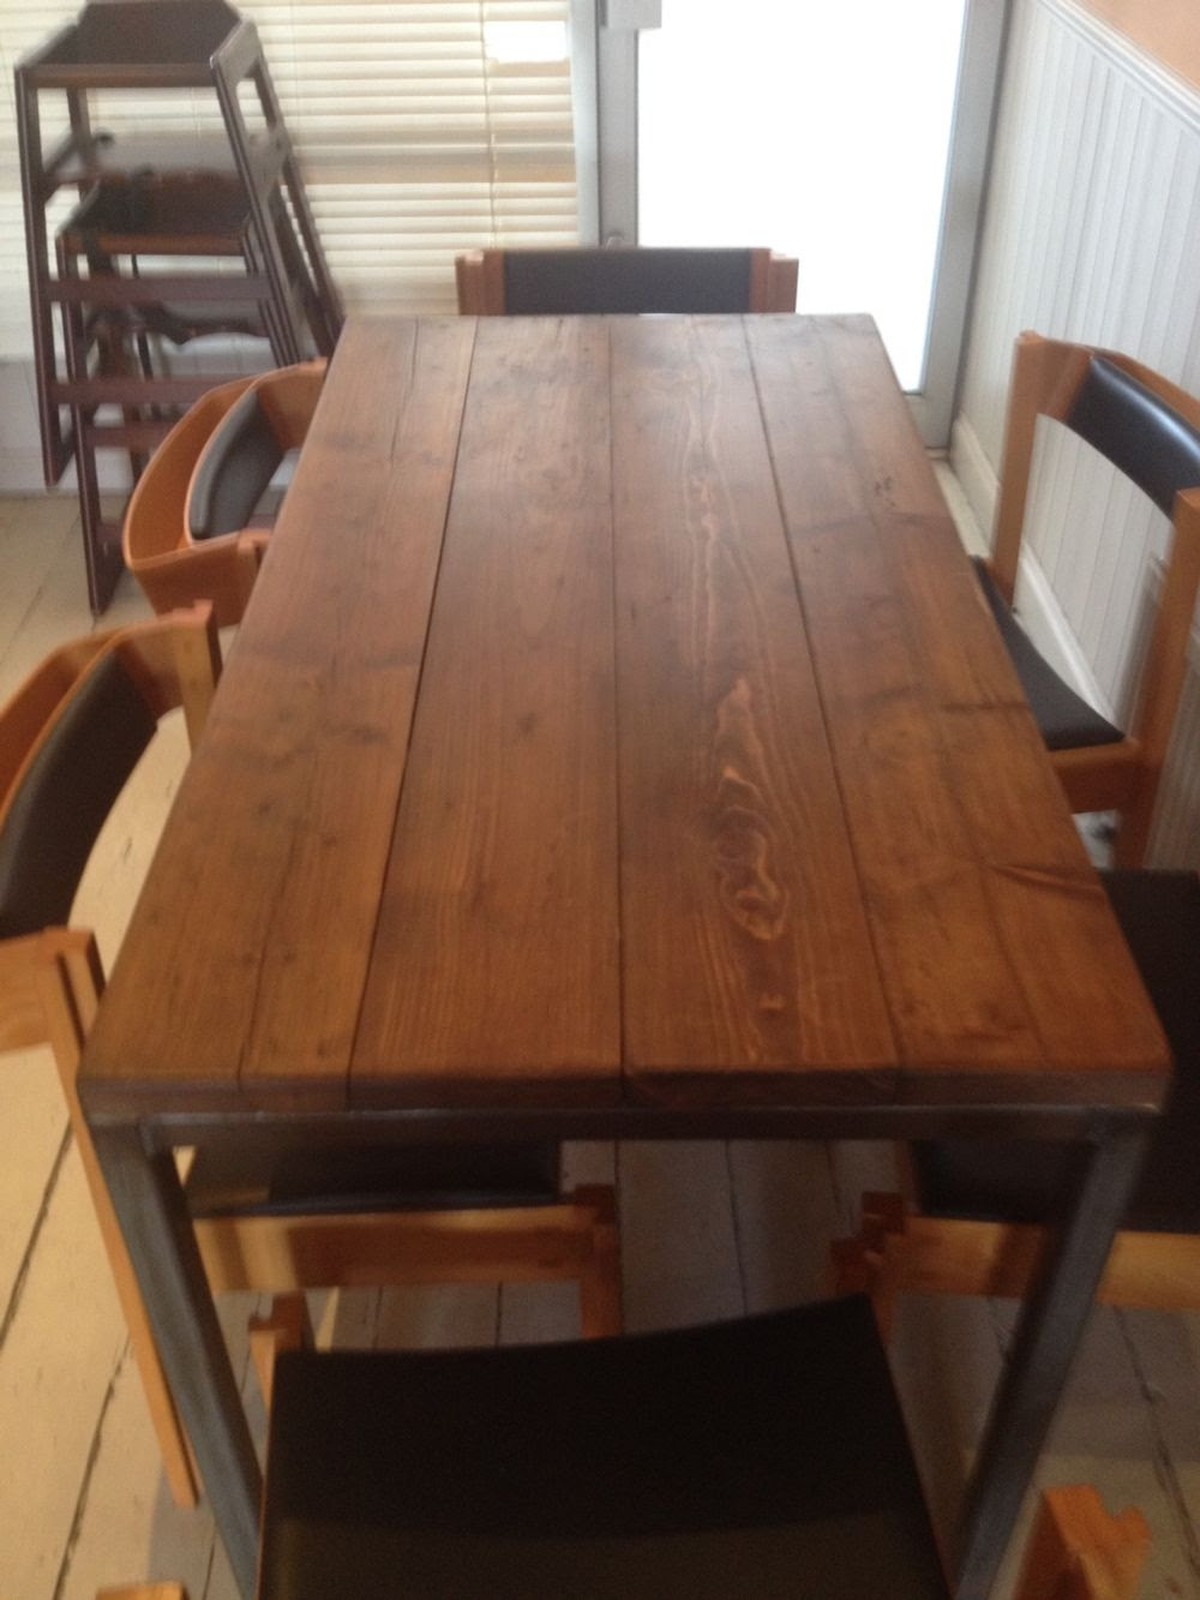 Secondhand Hotel Furniture | Dining Tables | Reclaimed ...